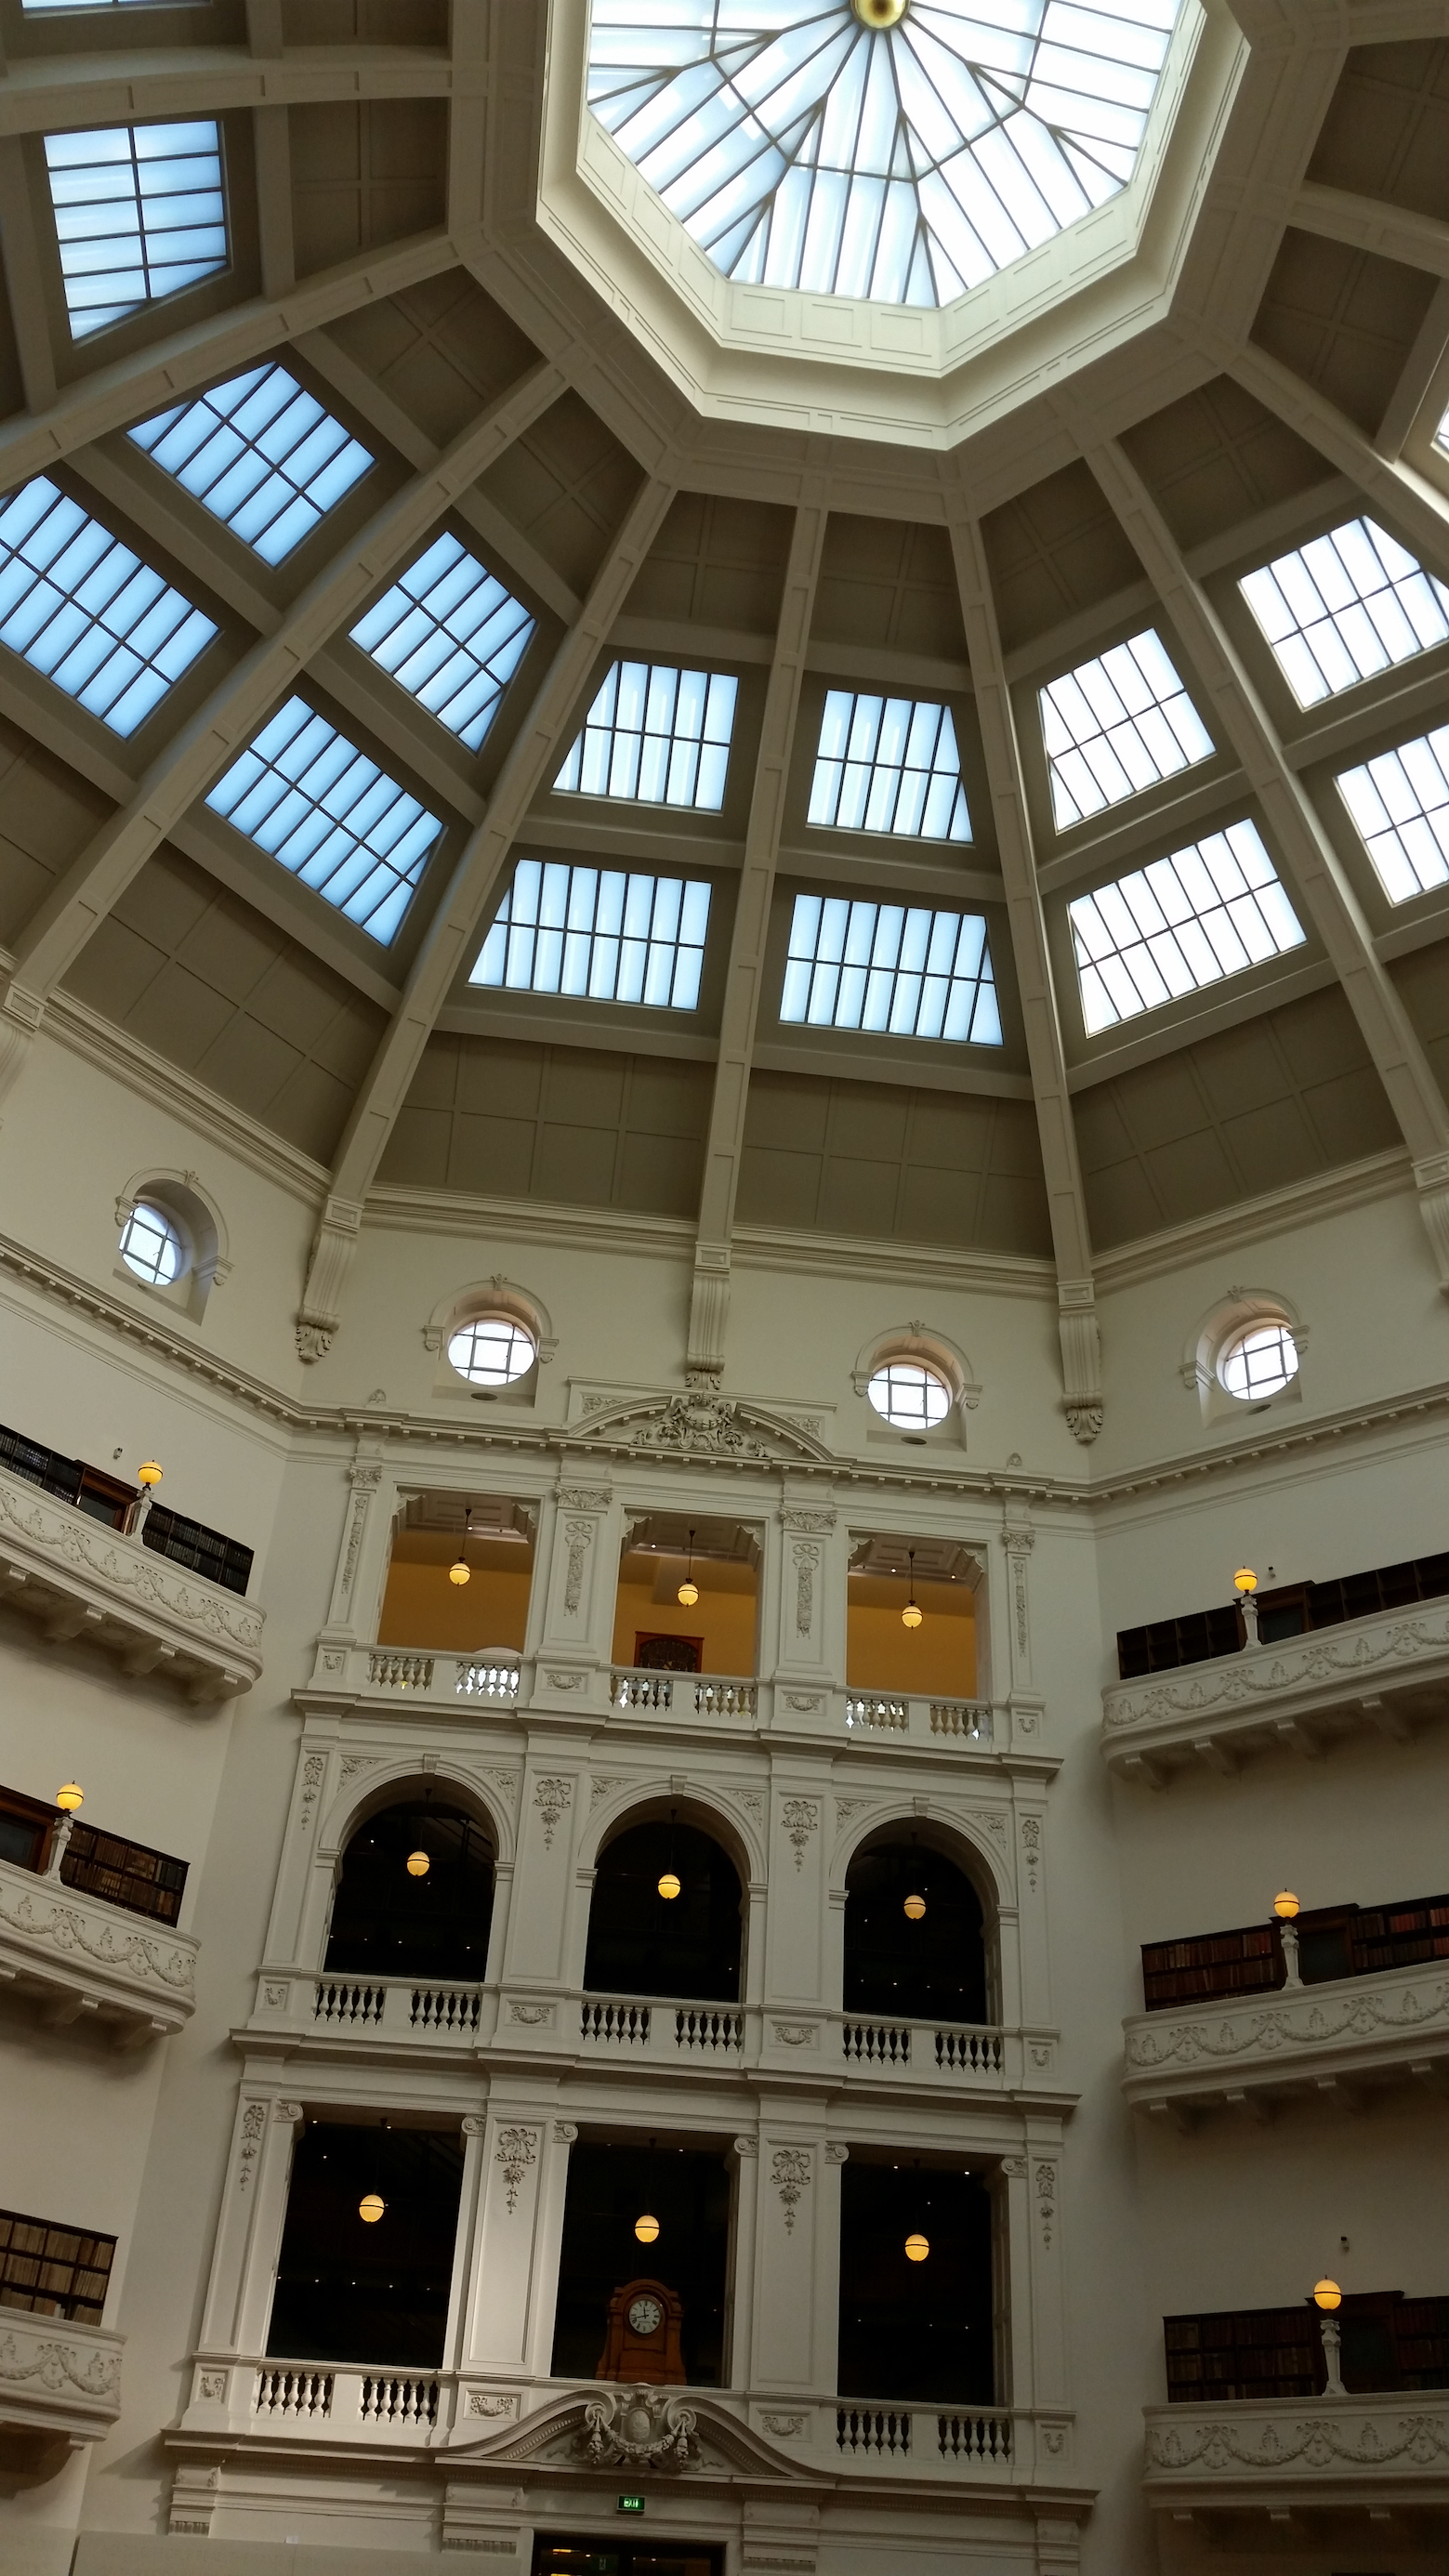 Charles La Trobe and my visit to the State Library of Victoria ...